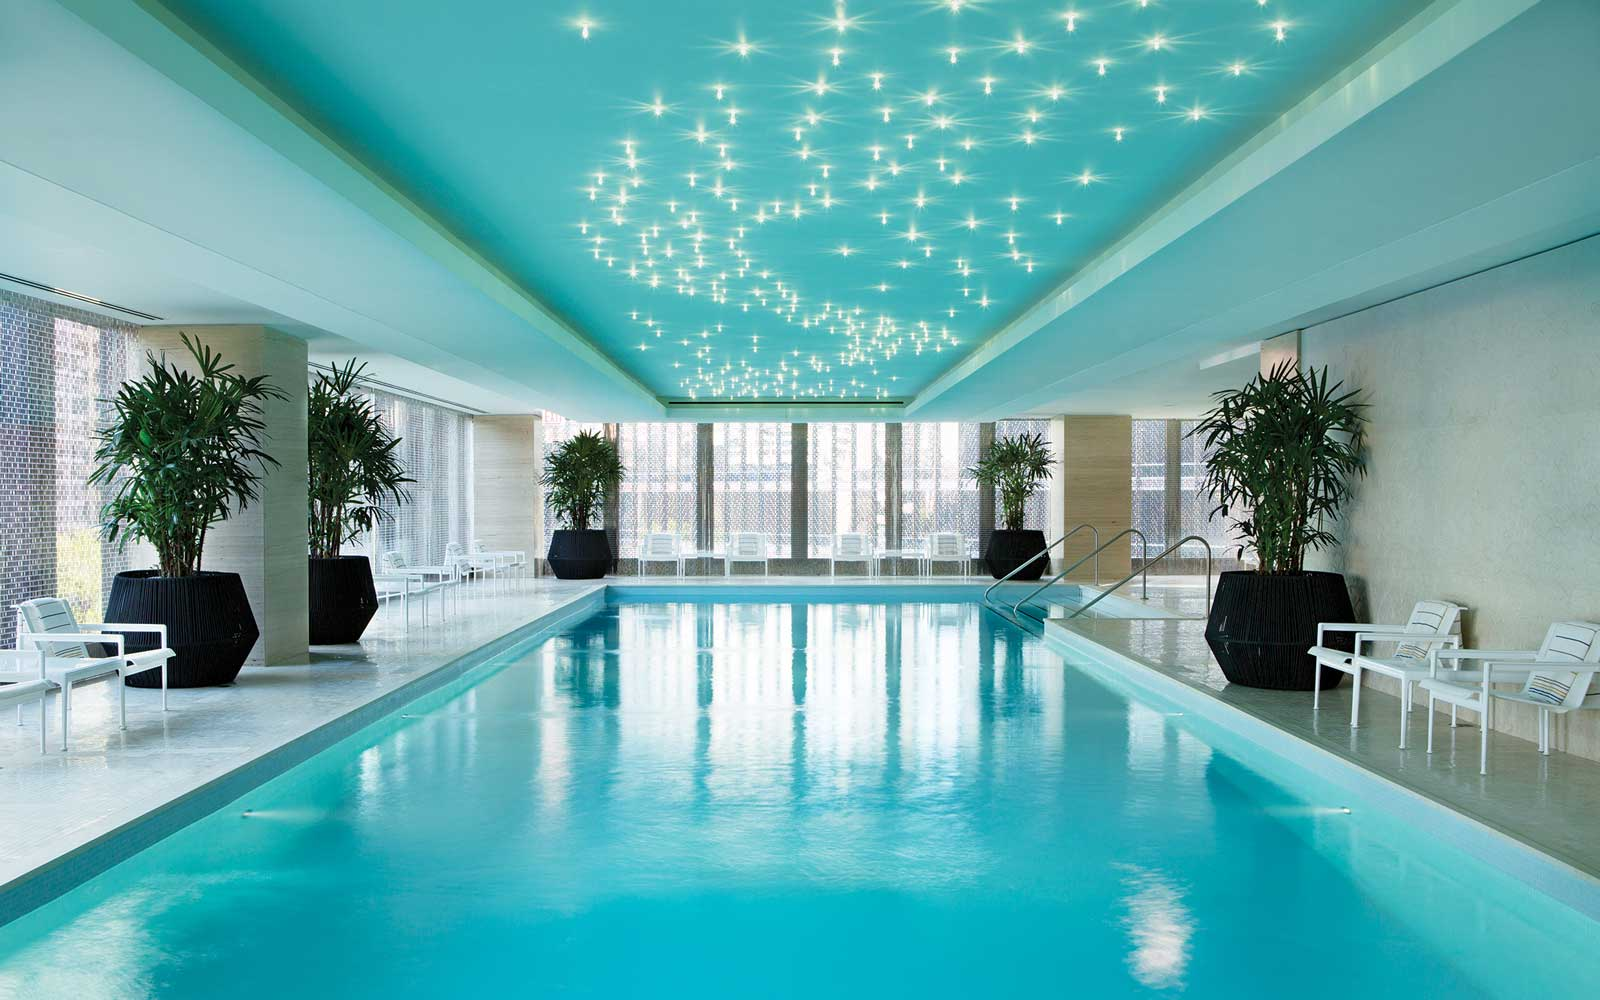 Pool at the Chuau spa at the Langham Chicago hotel